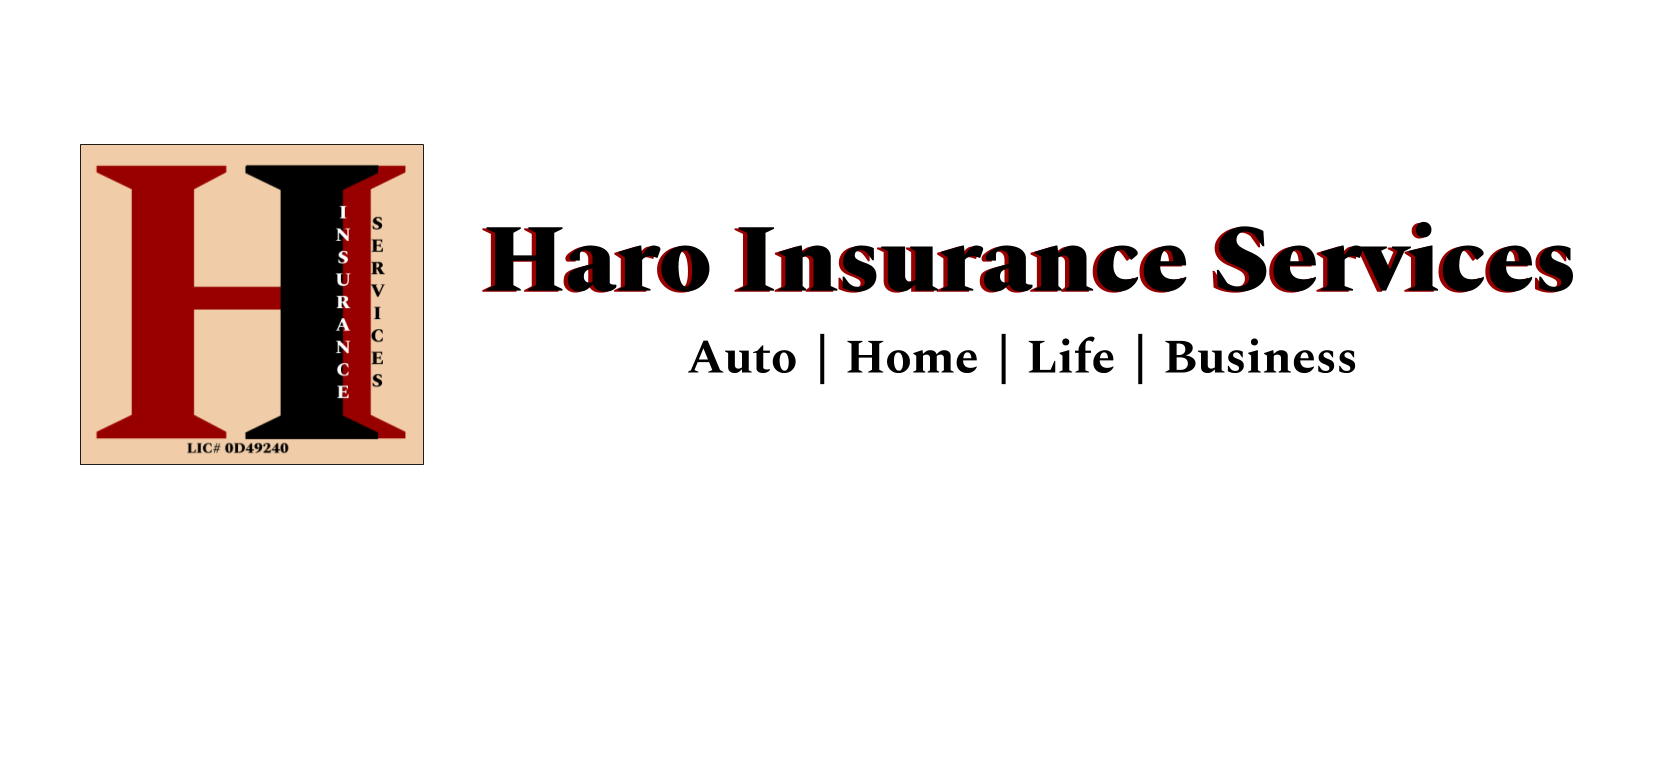 Haro Insurance Services